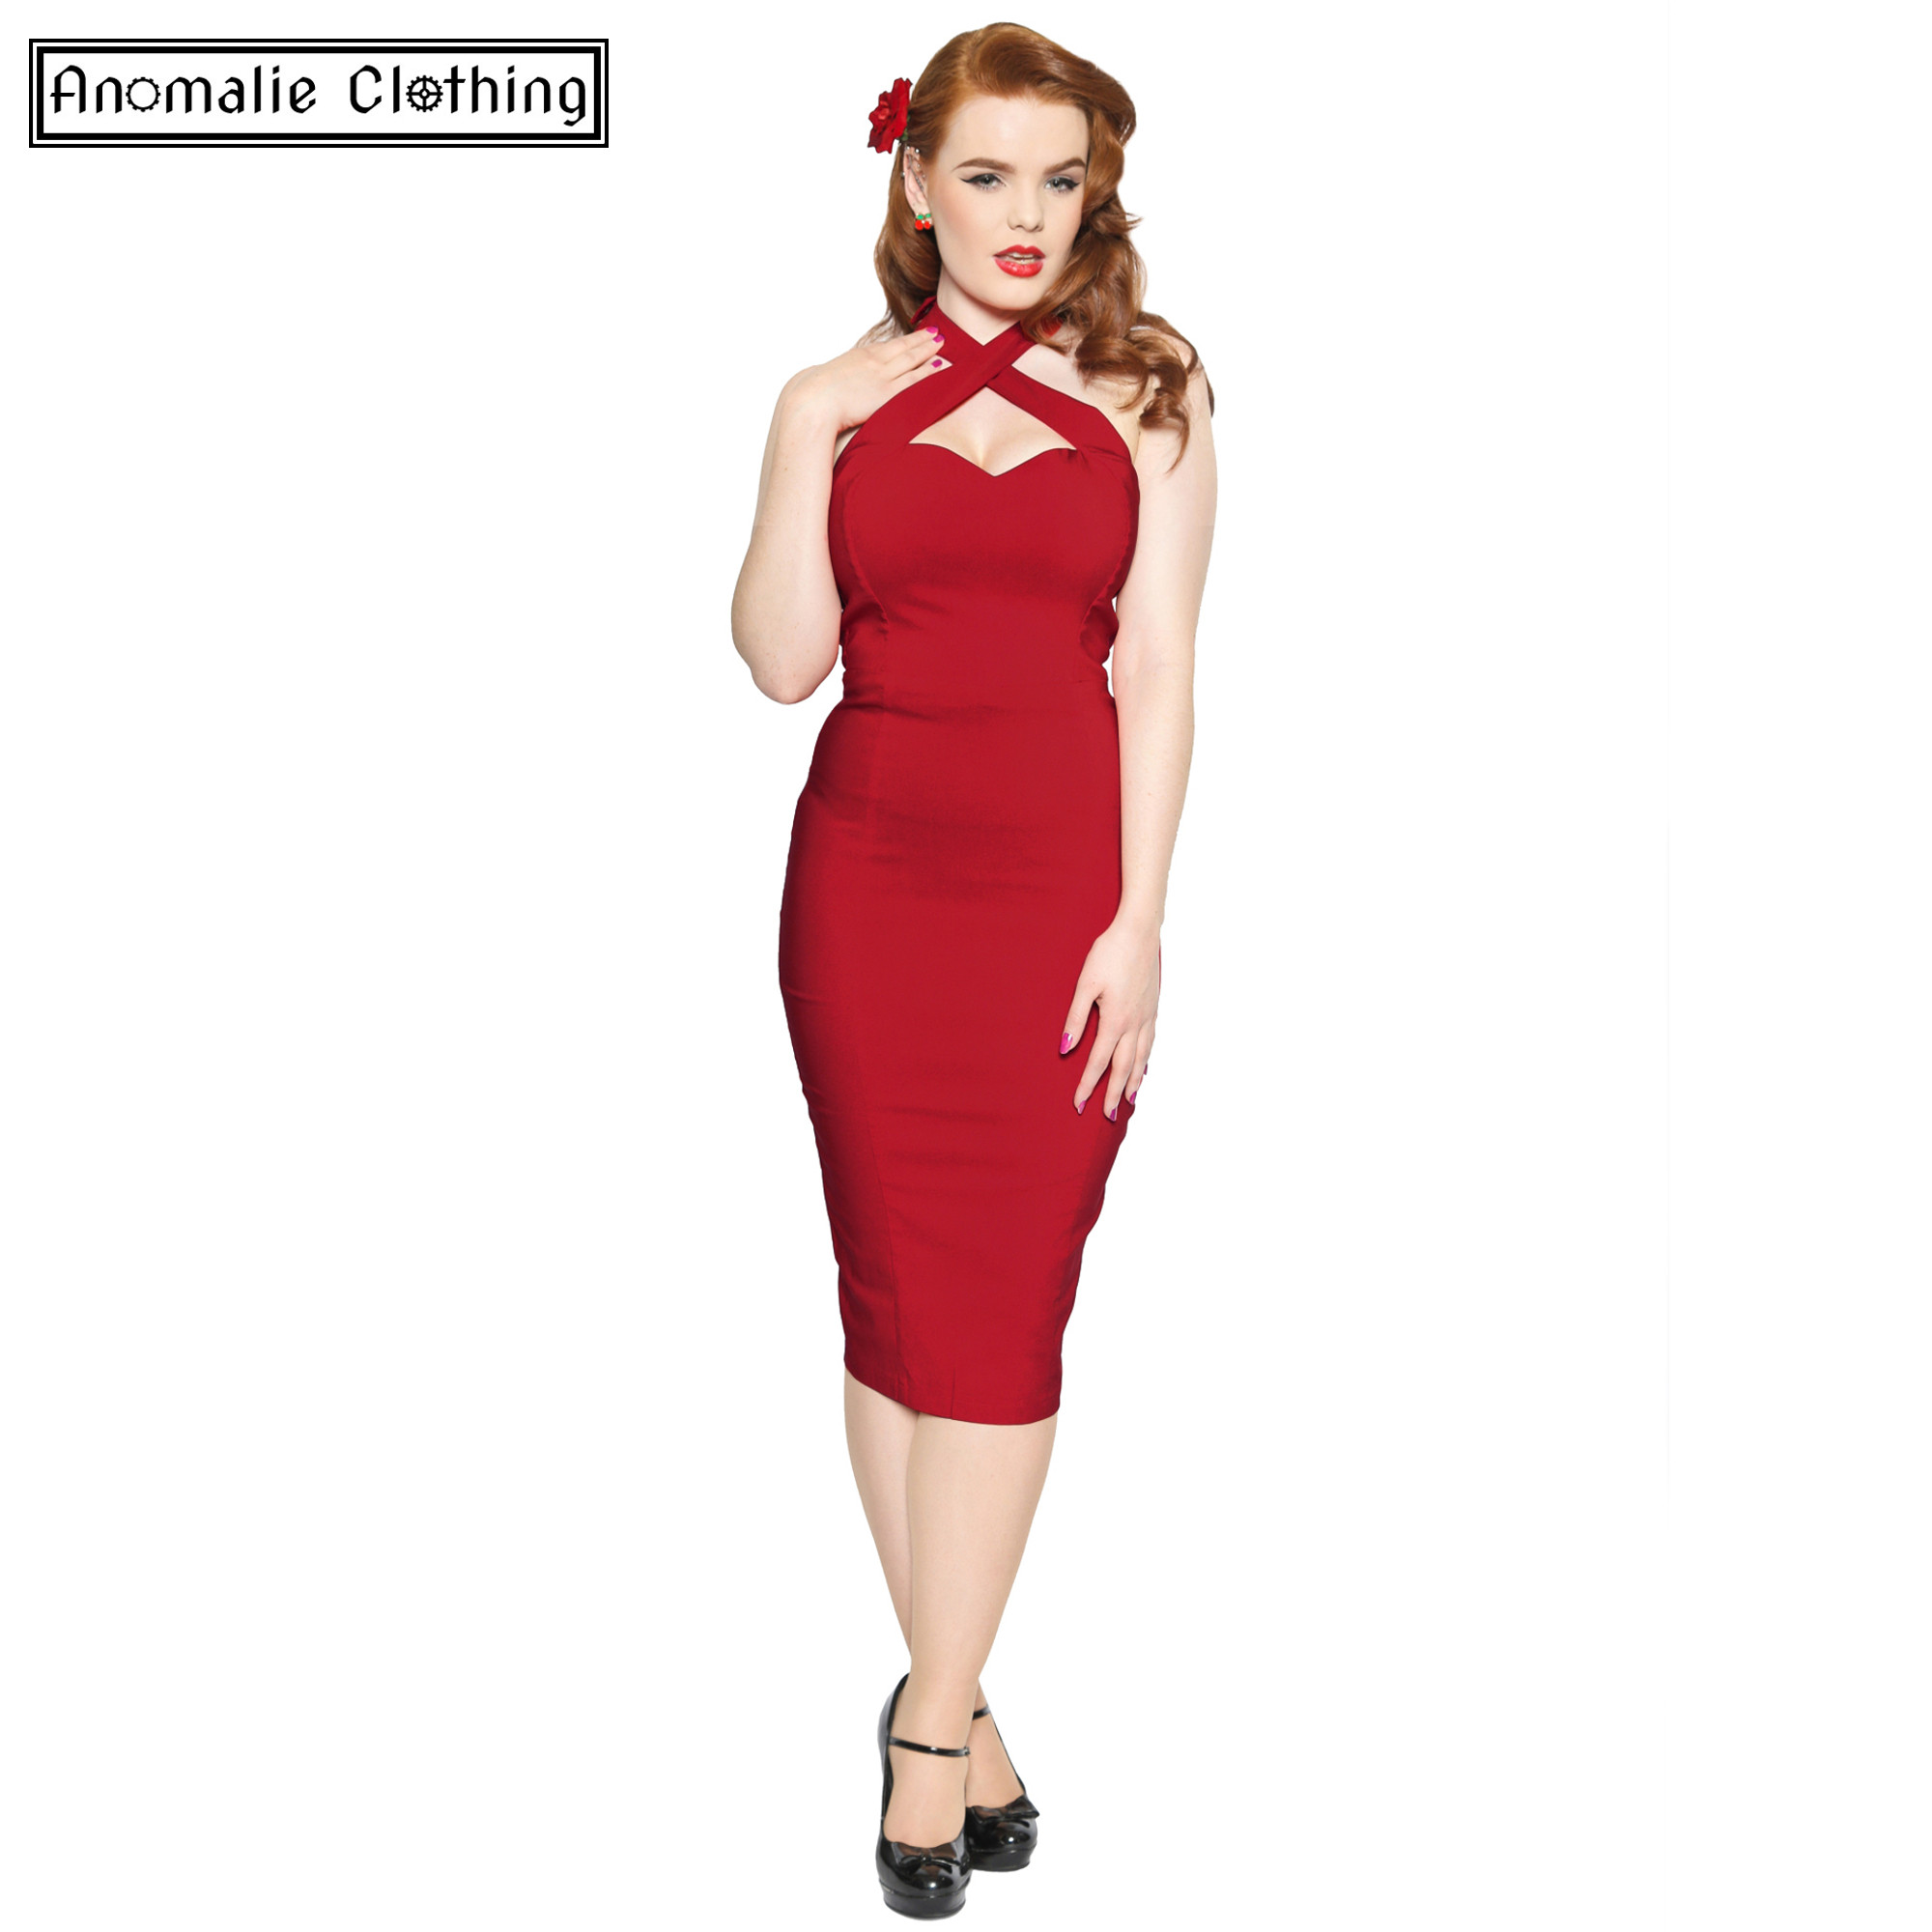 bbc7dbb169a6 Red penny pencil dress collectif anomalie clothing square 2000x2000 model  original